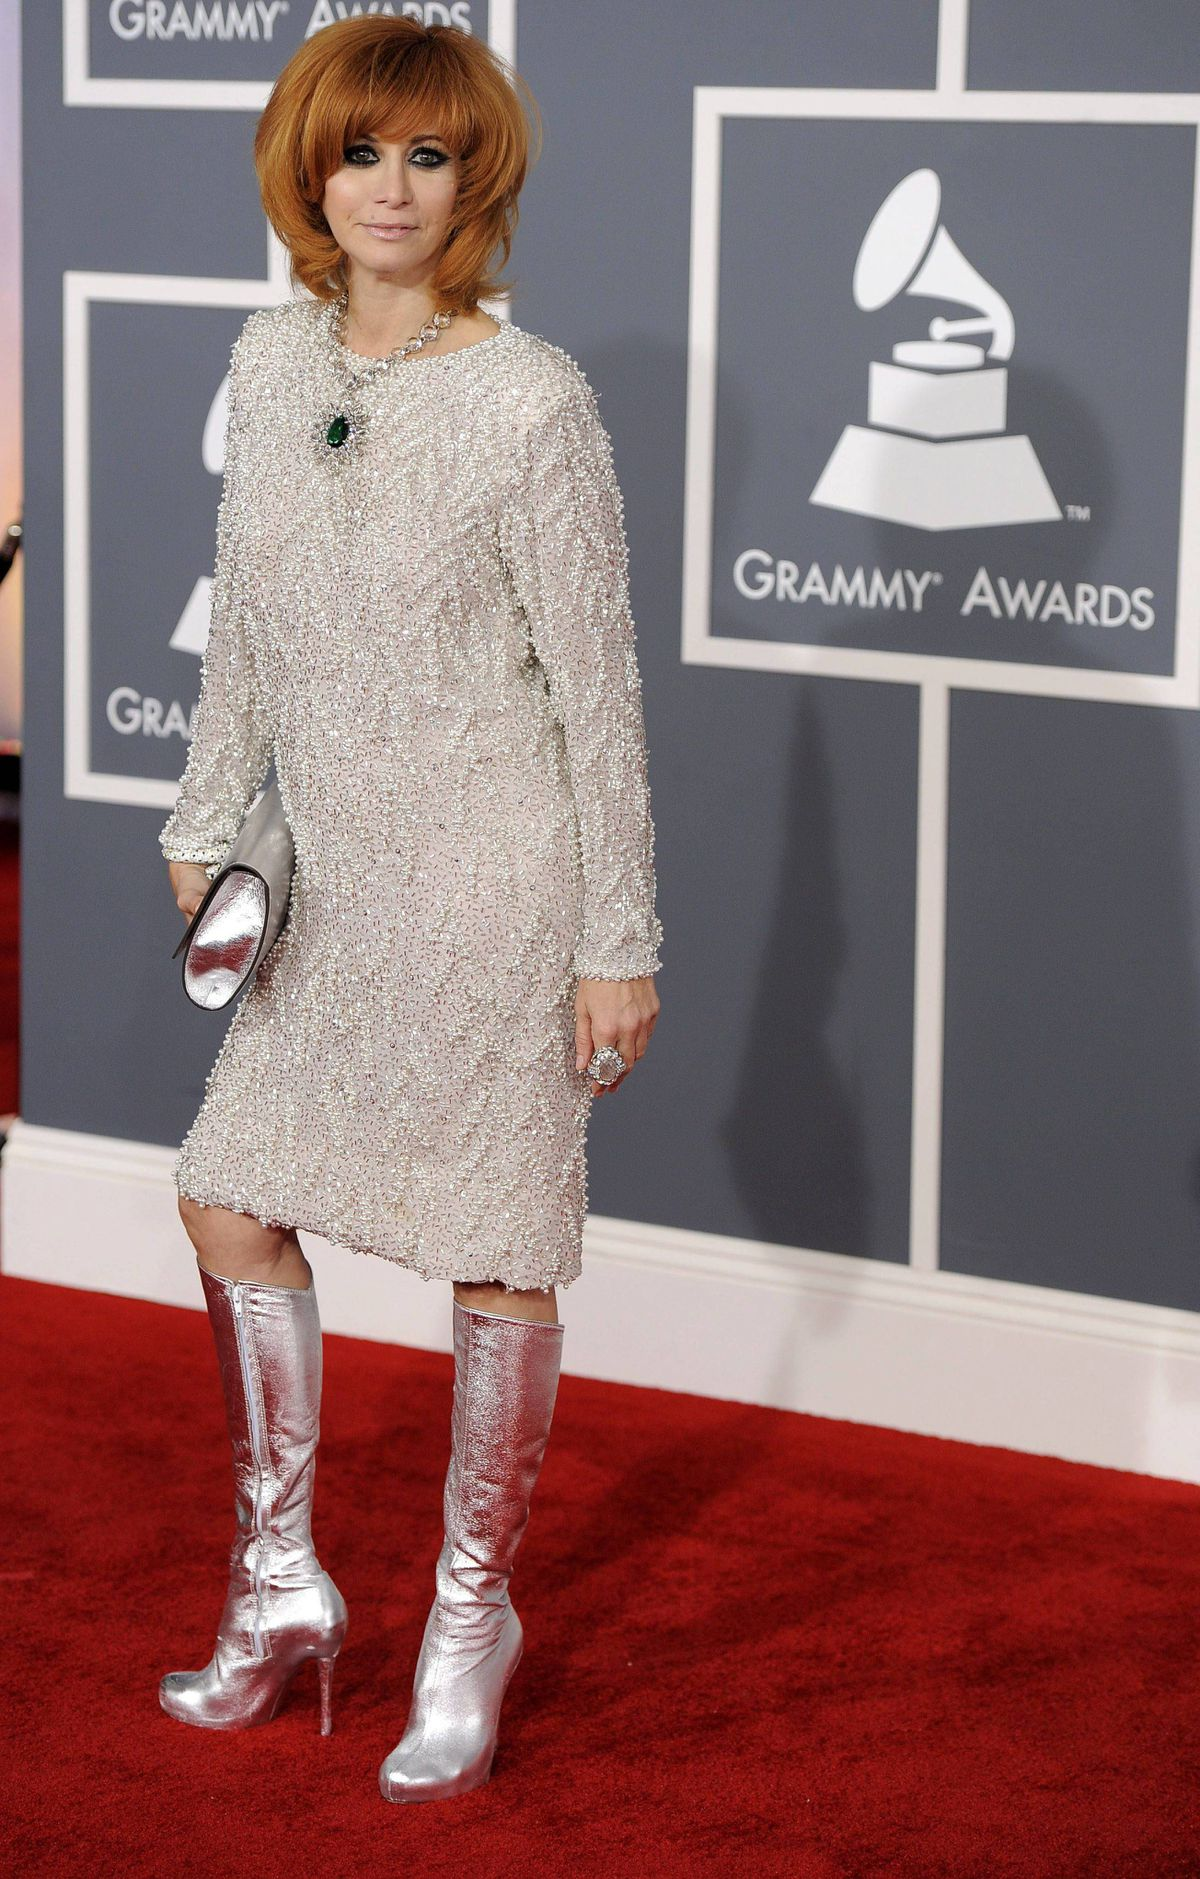 Linda Ramone arrives at the 54th annual GRAMMY Awards on Sunday, Feb. 12, 2012 in Los Angeles.